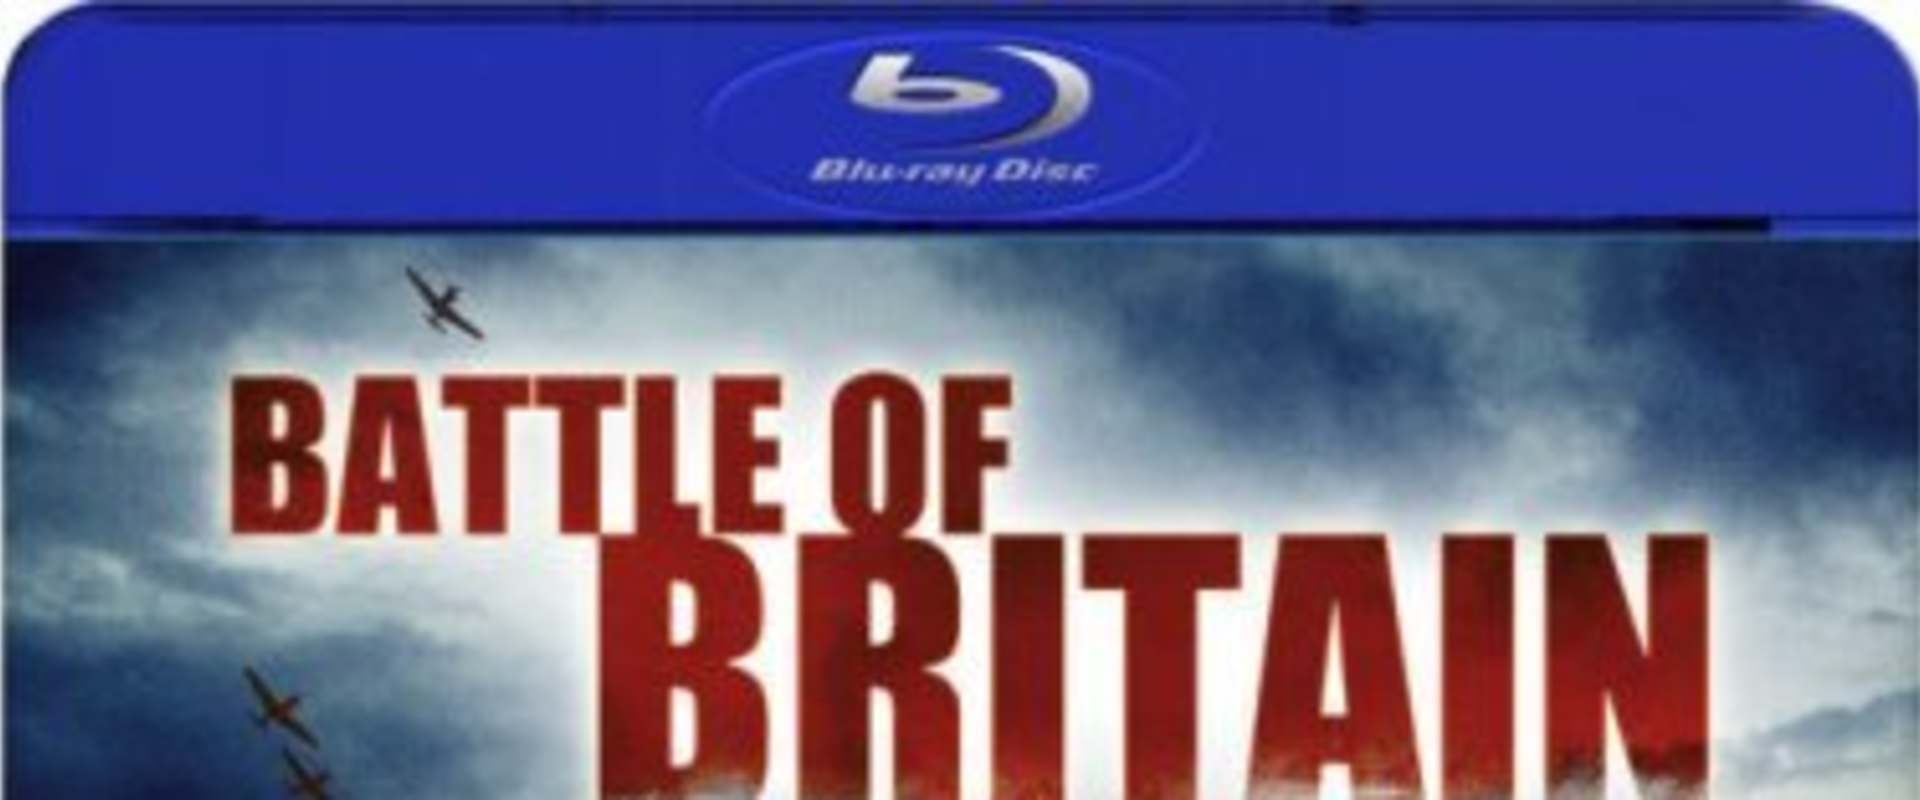 Battle of Britain background 1